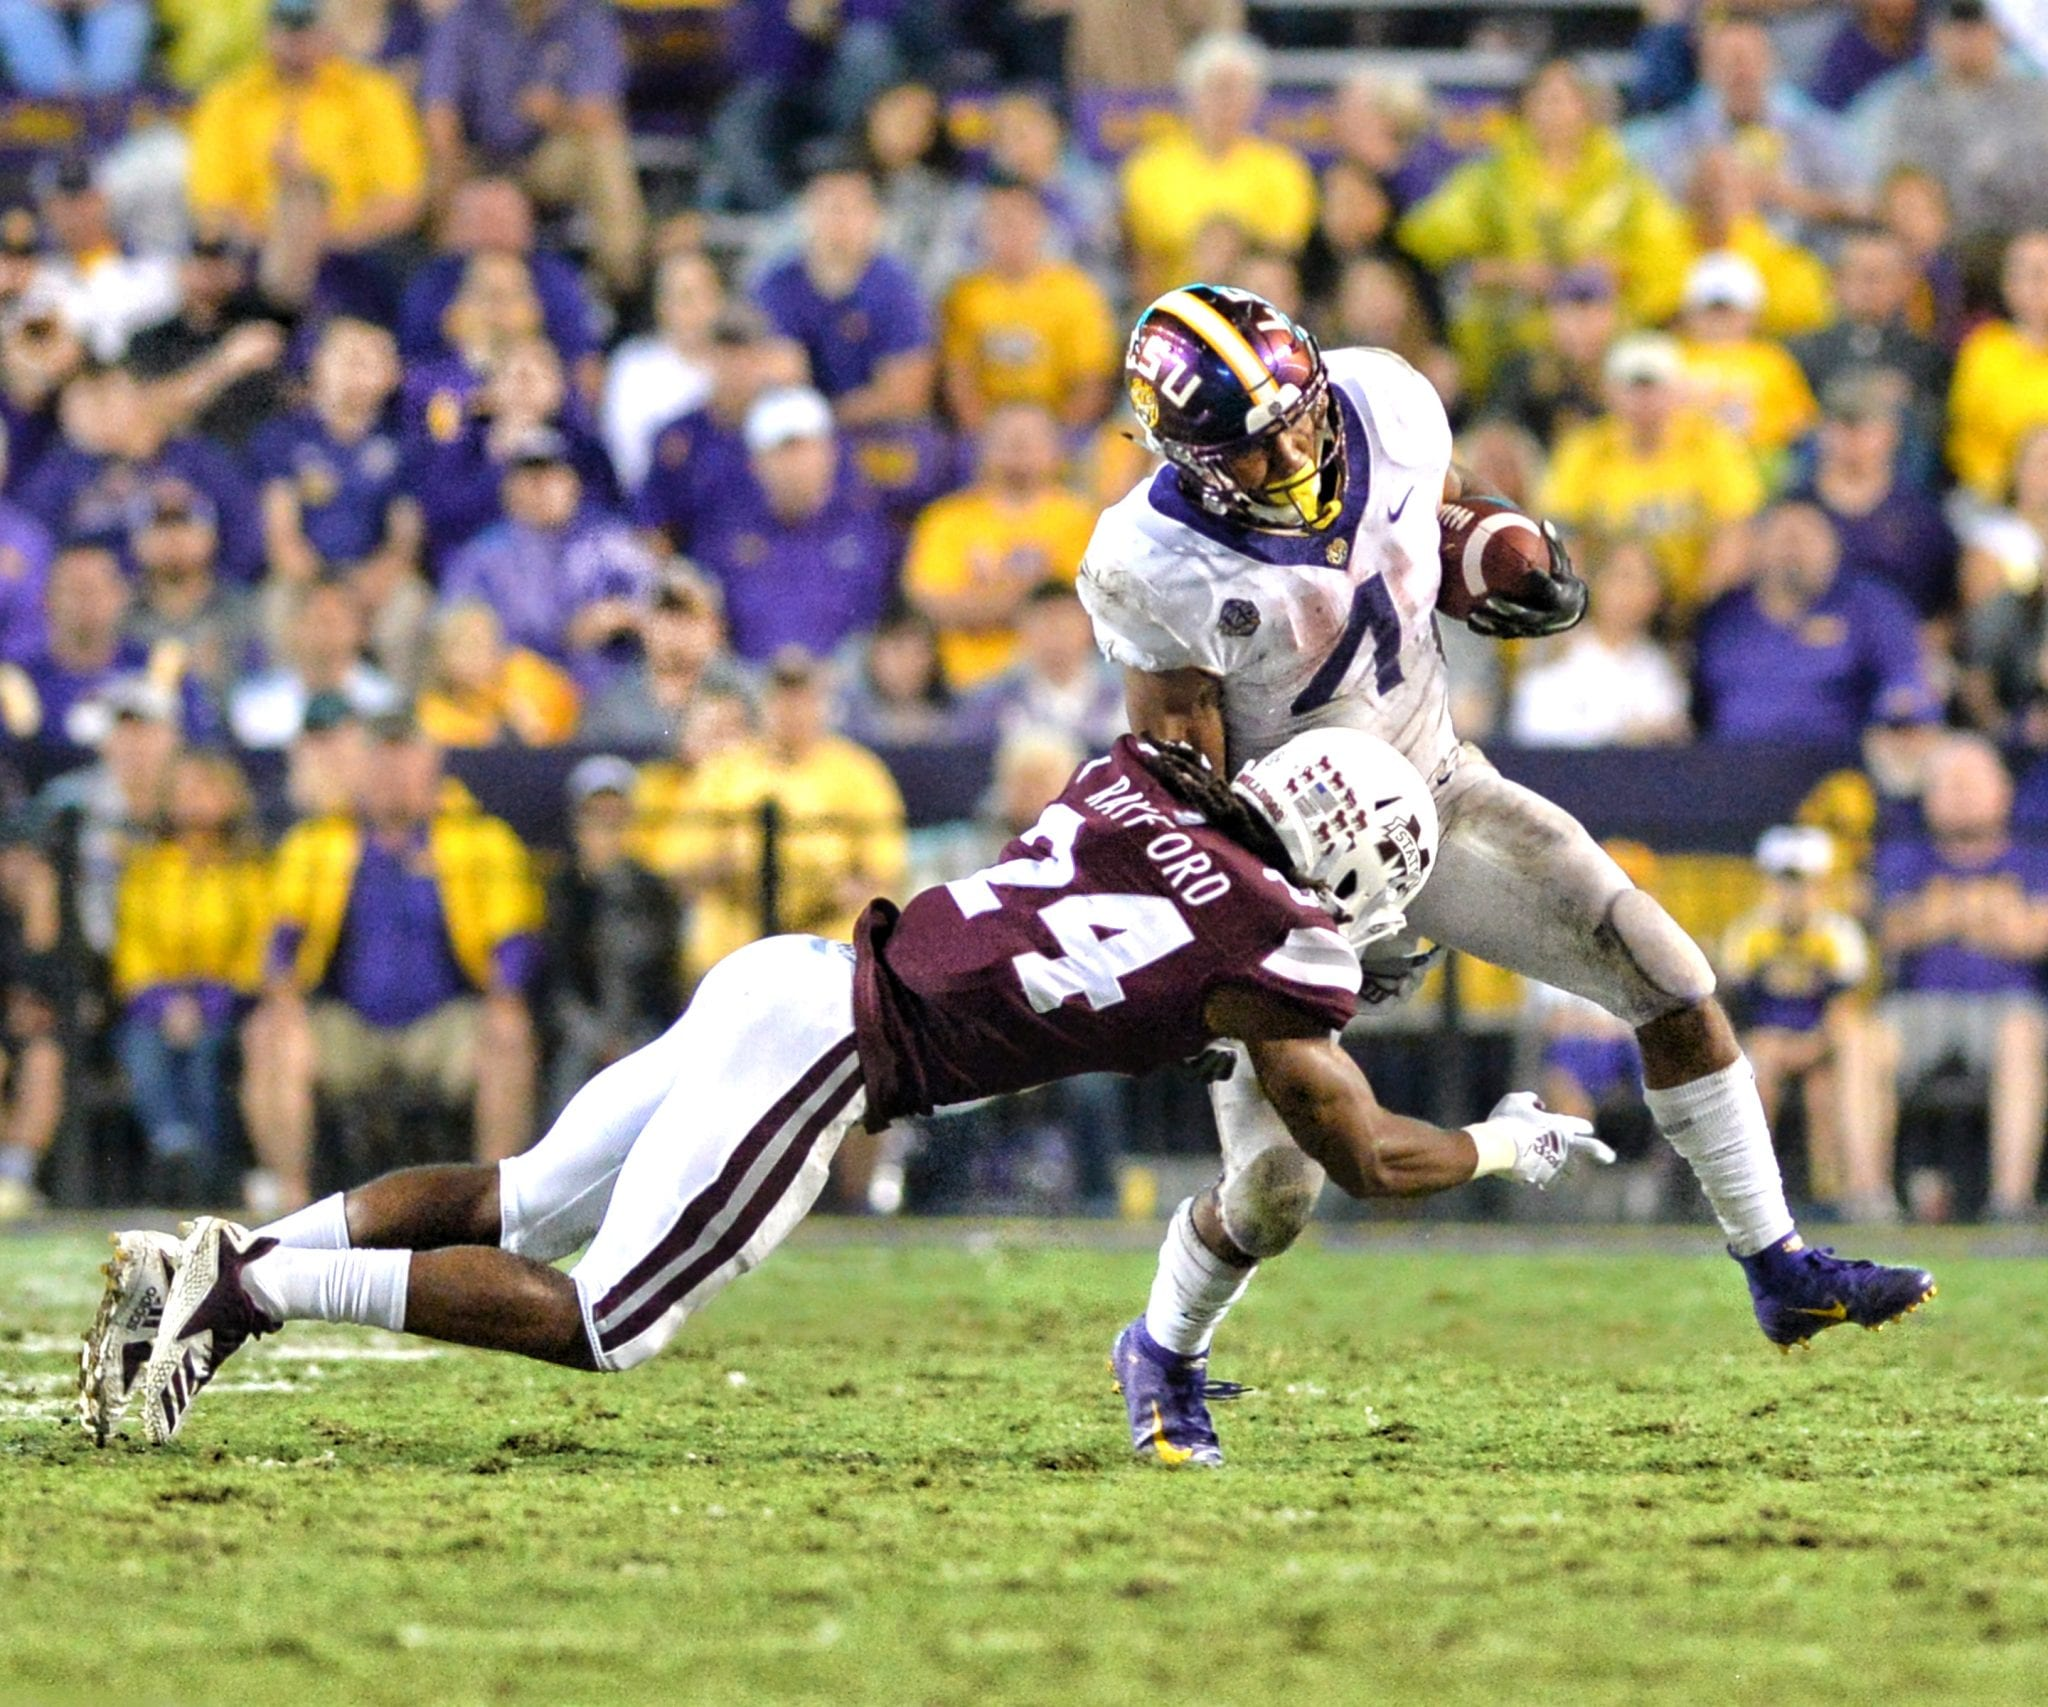 98ab63b2 College football: LSU downs Miss. State; Tigers rise to No. 4 in polls